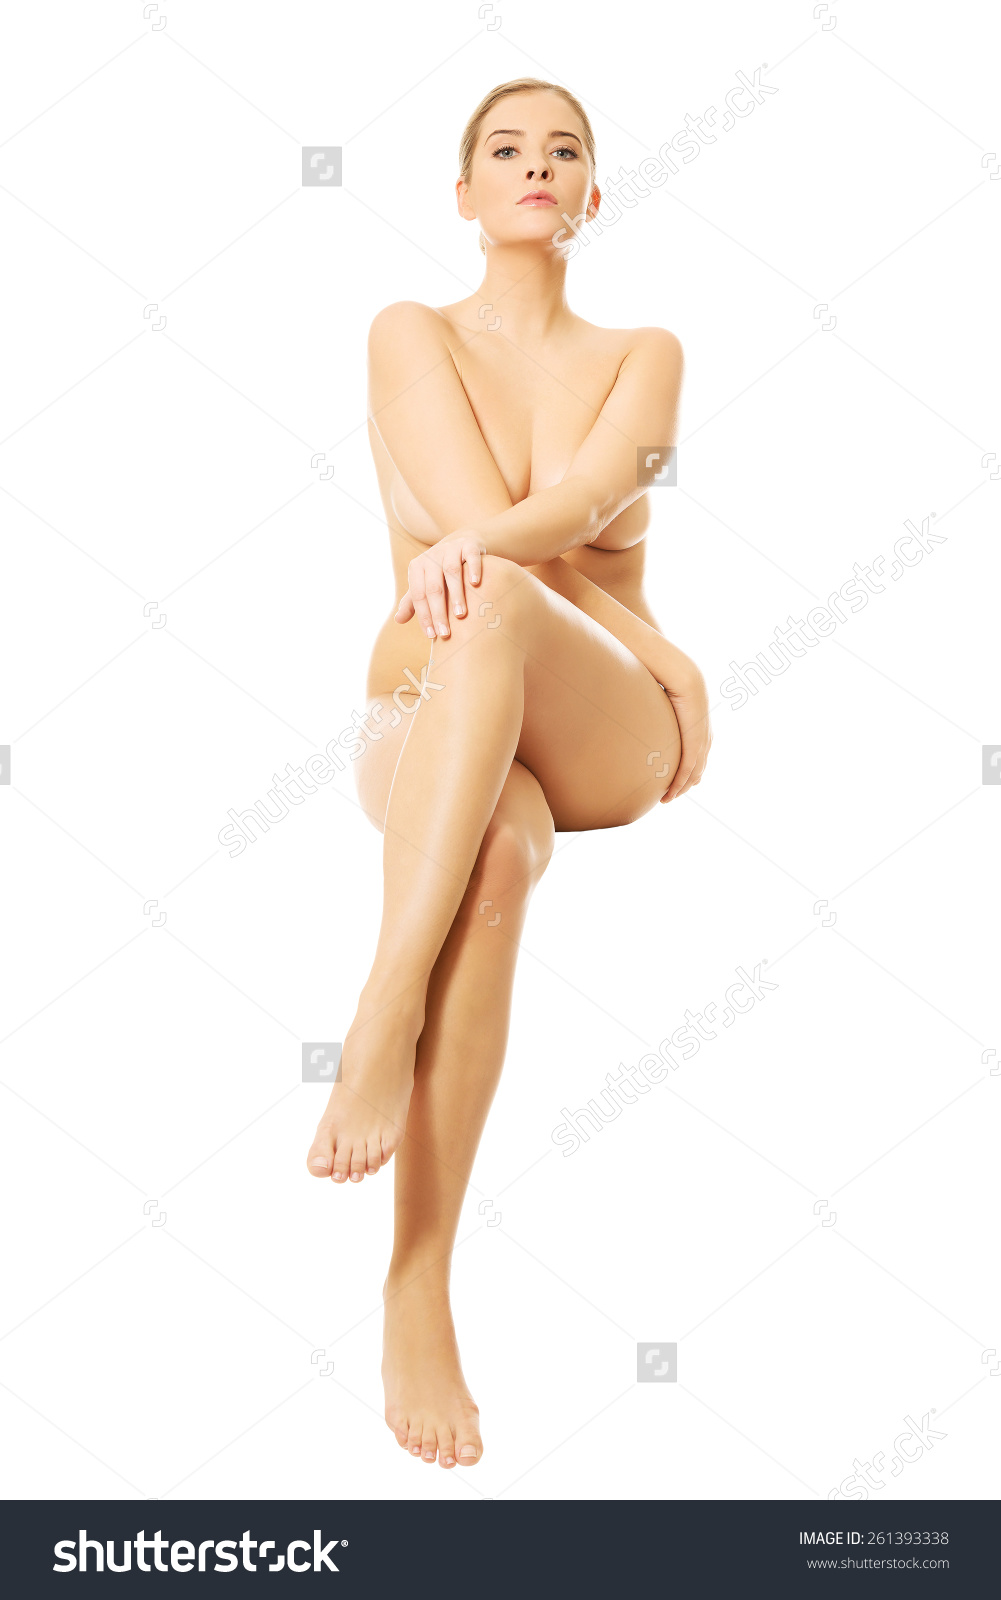 Nude Woman Sitting On Something Invisible 1.jpg